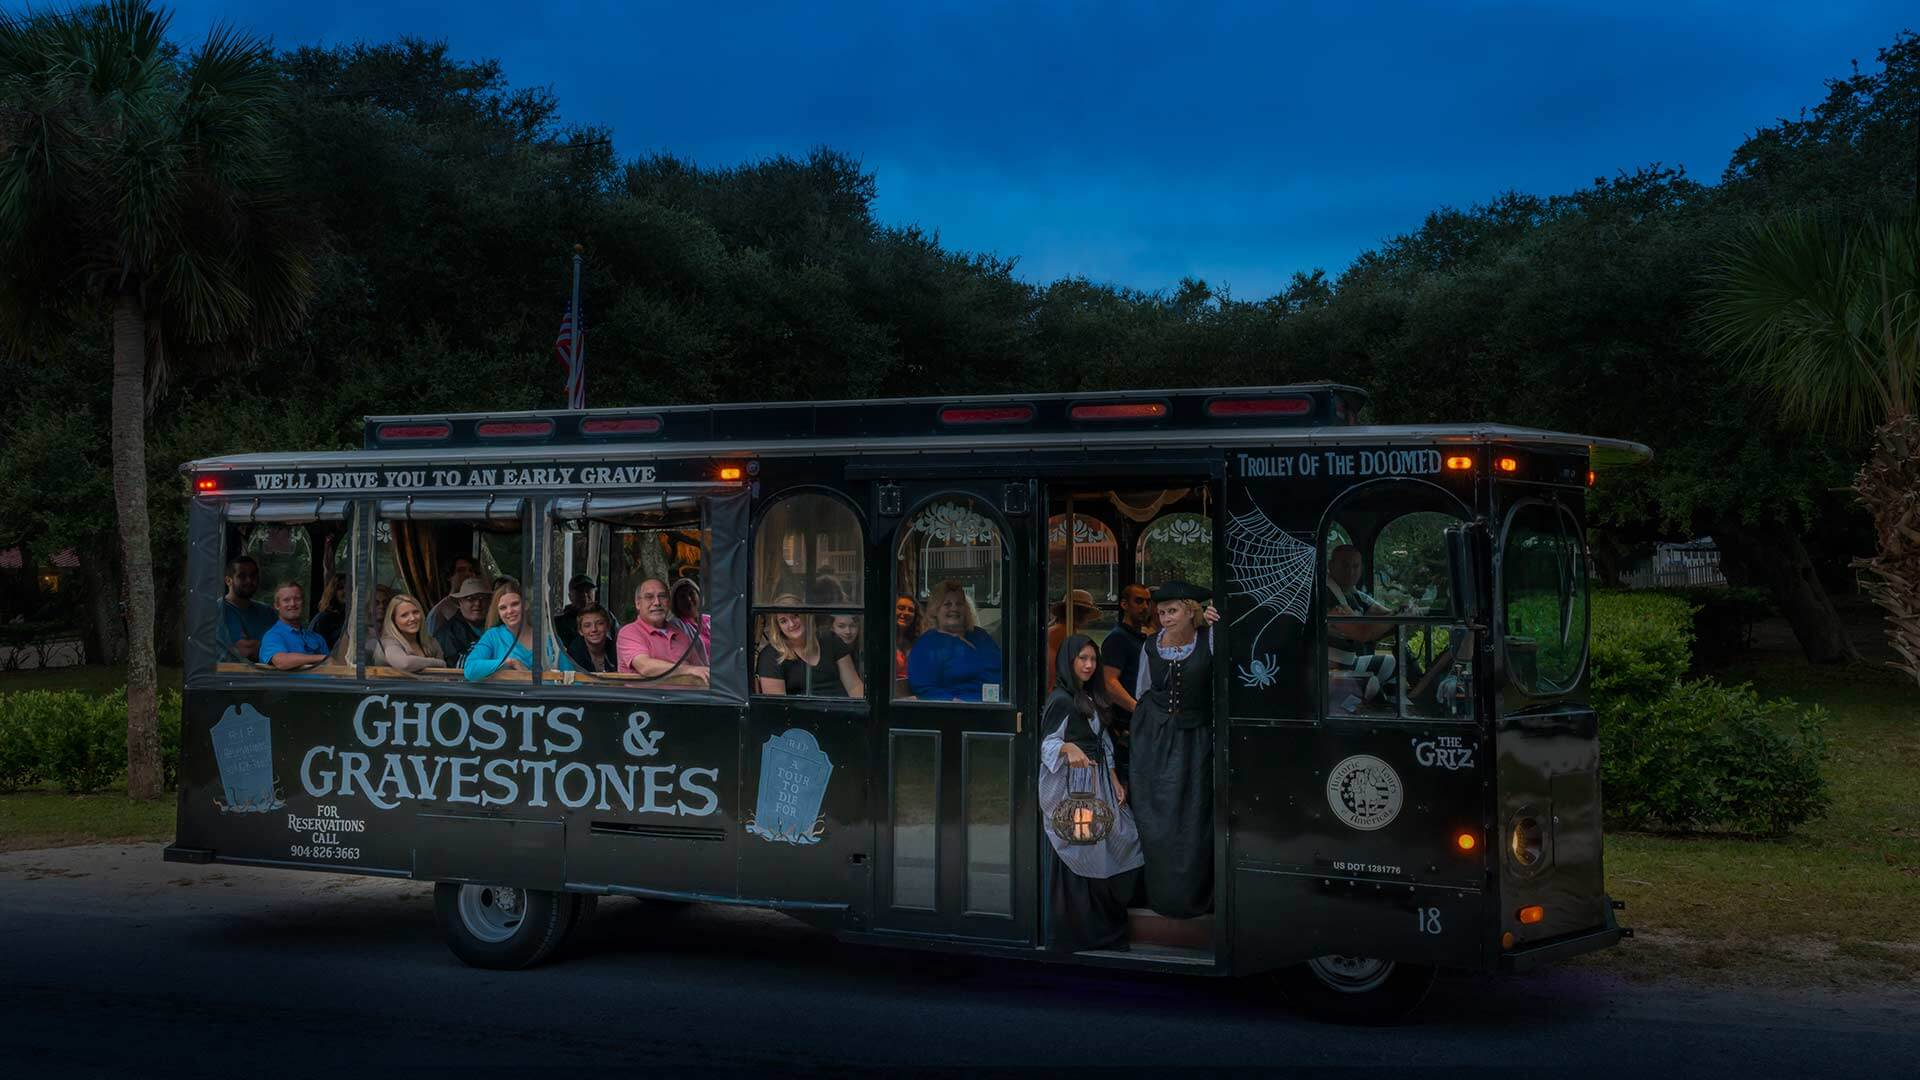 st augustine ghost tour